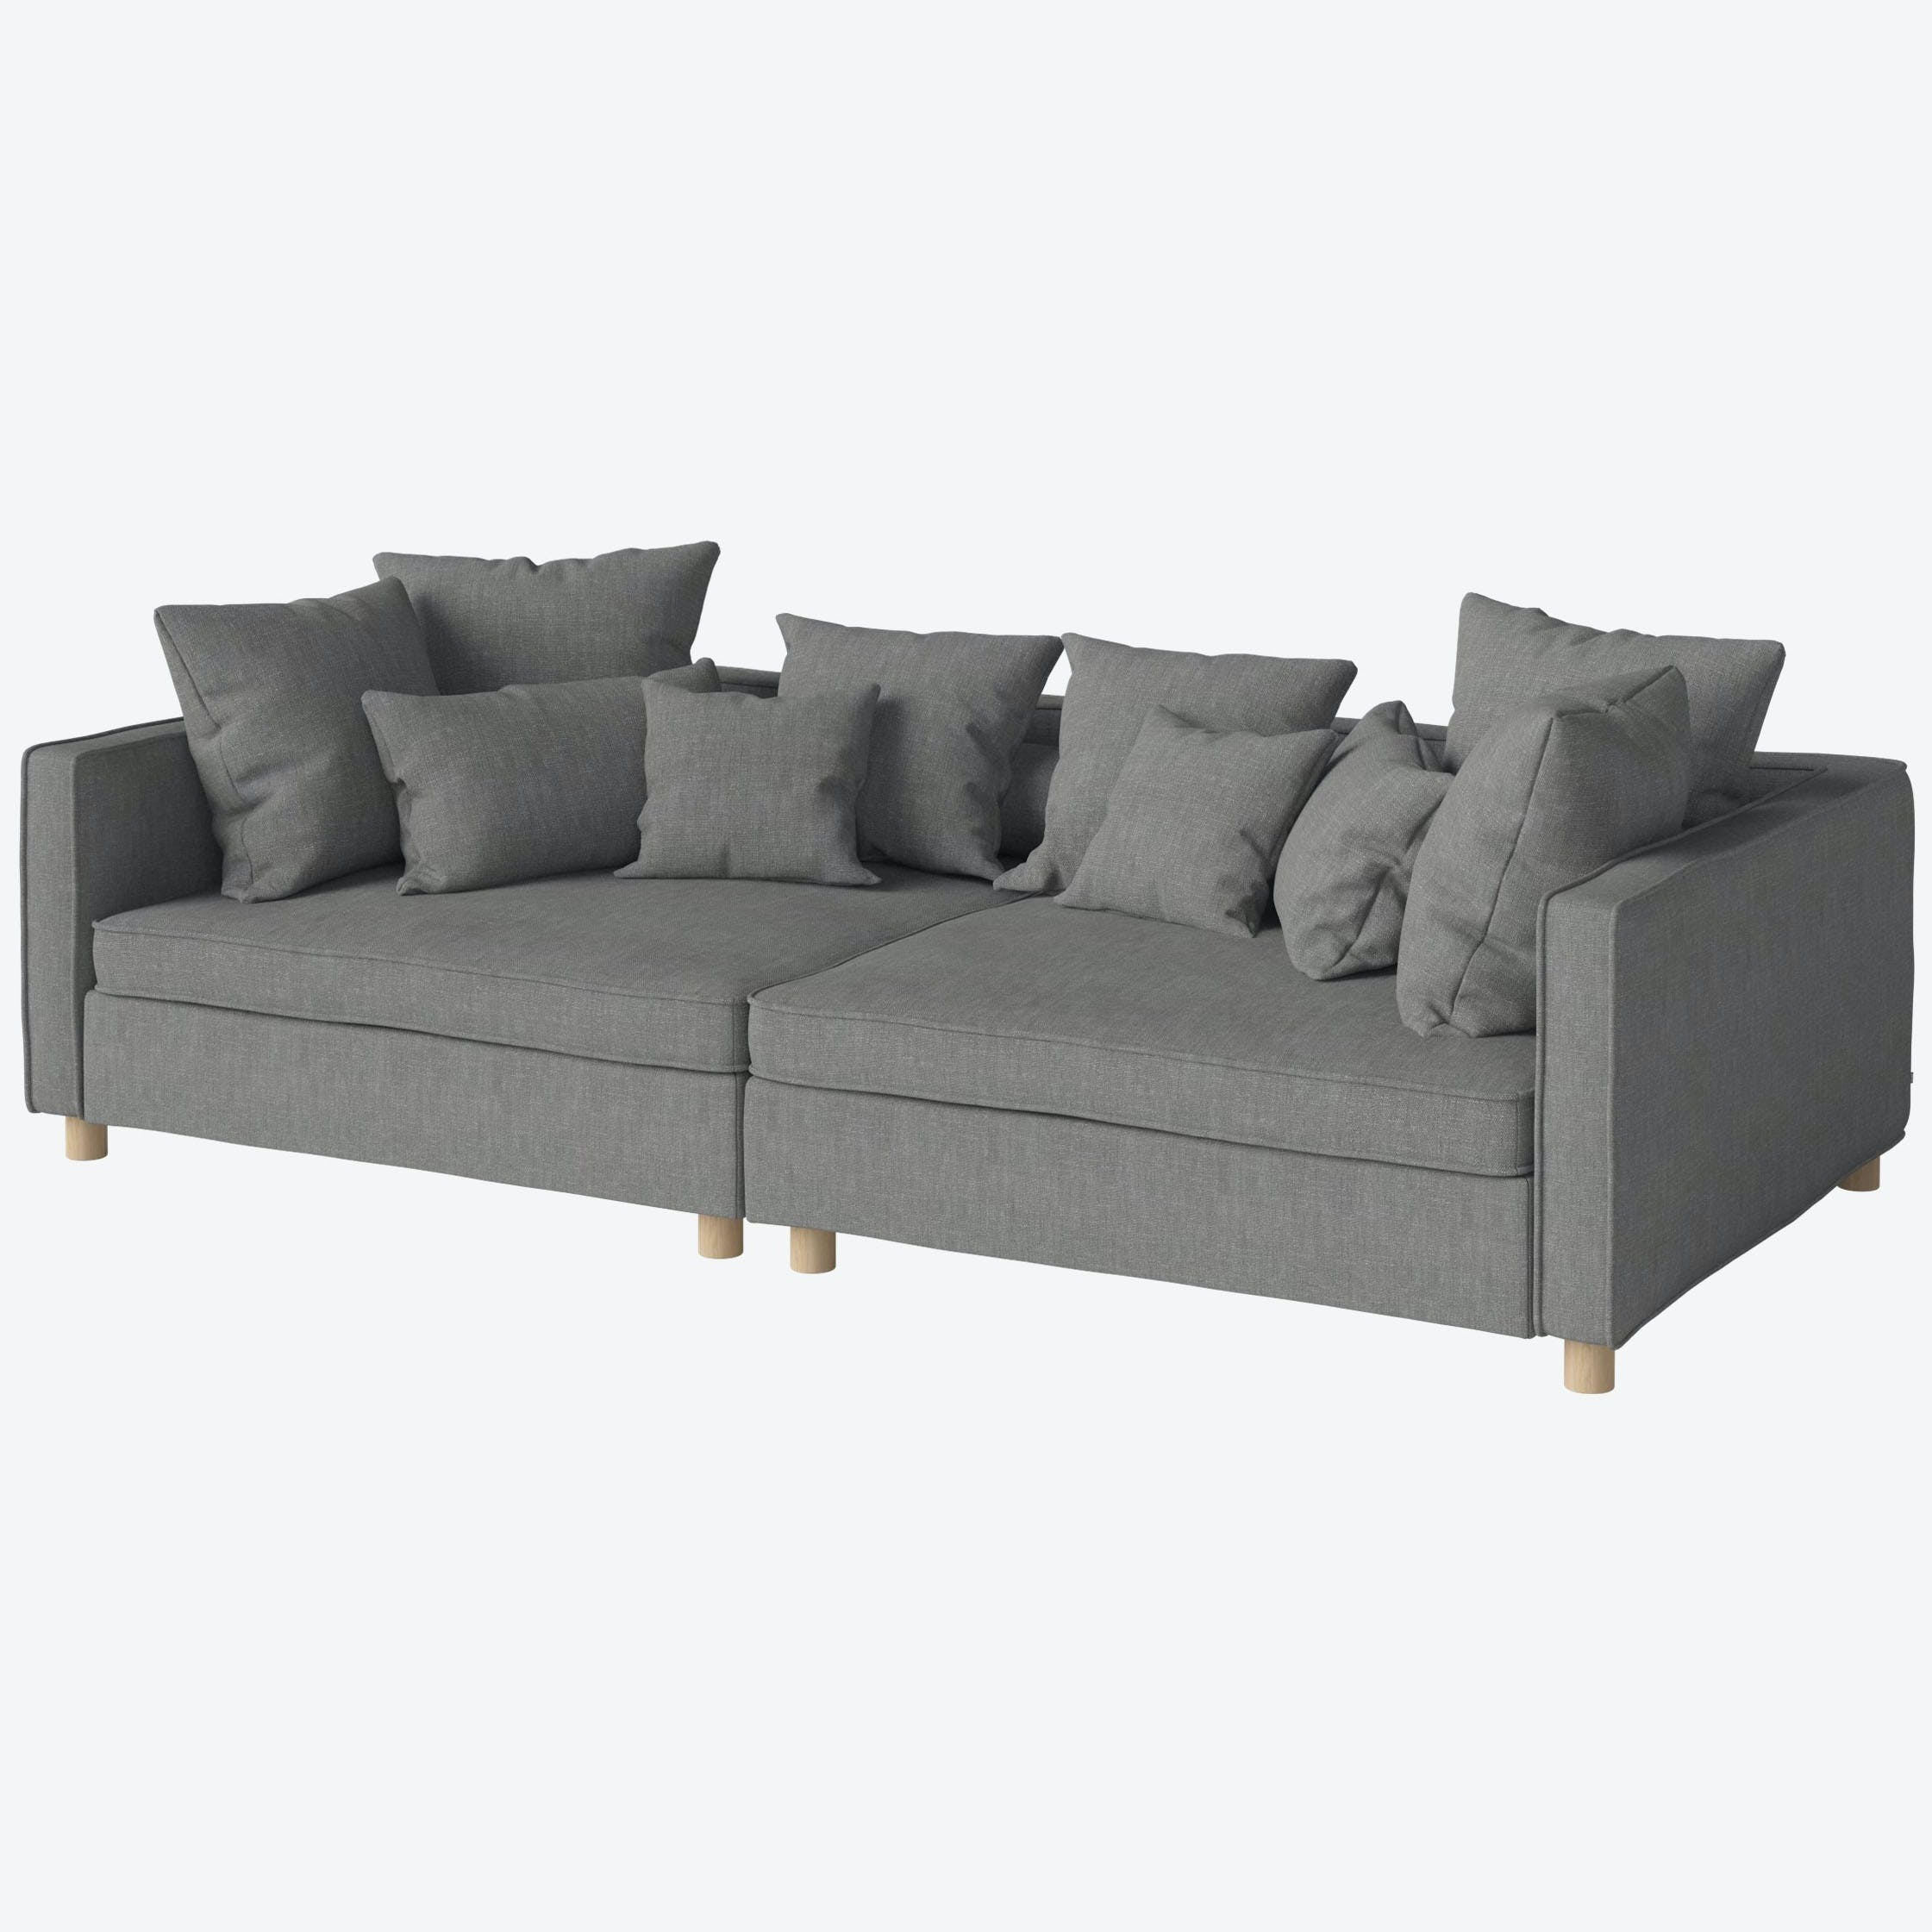 Bolia Mr Big Sofa Thumbnail 2019 Haute Living